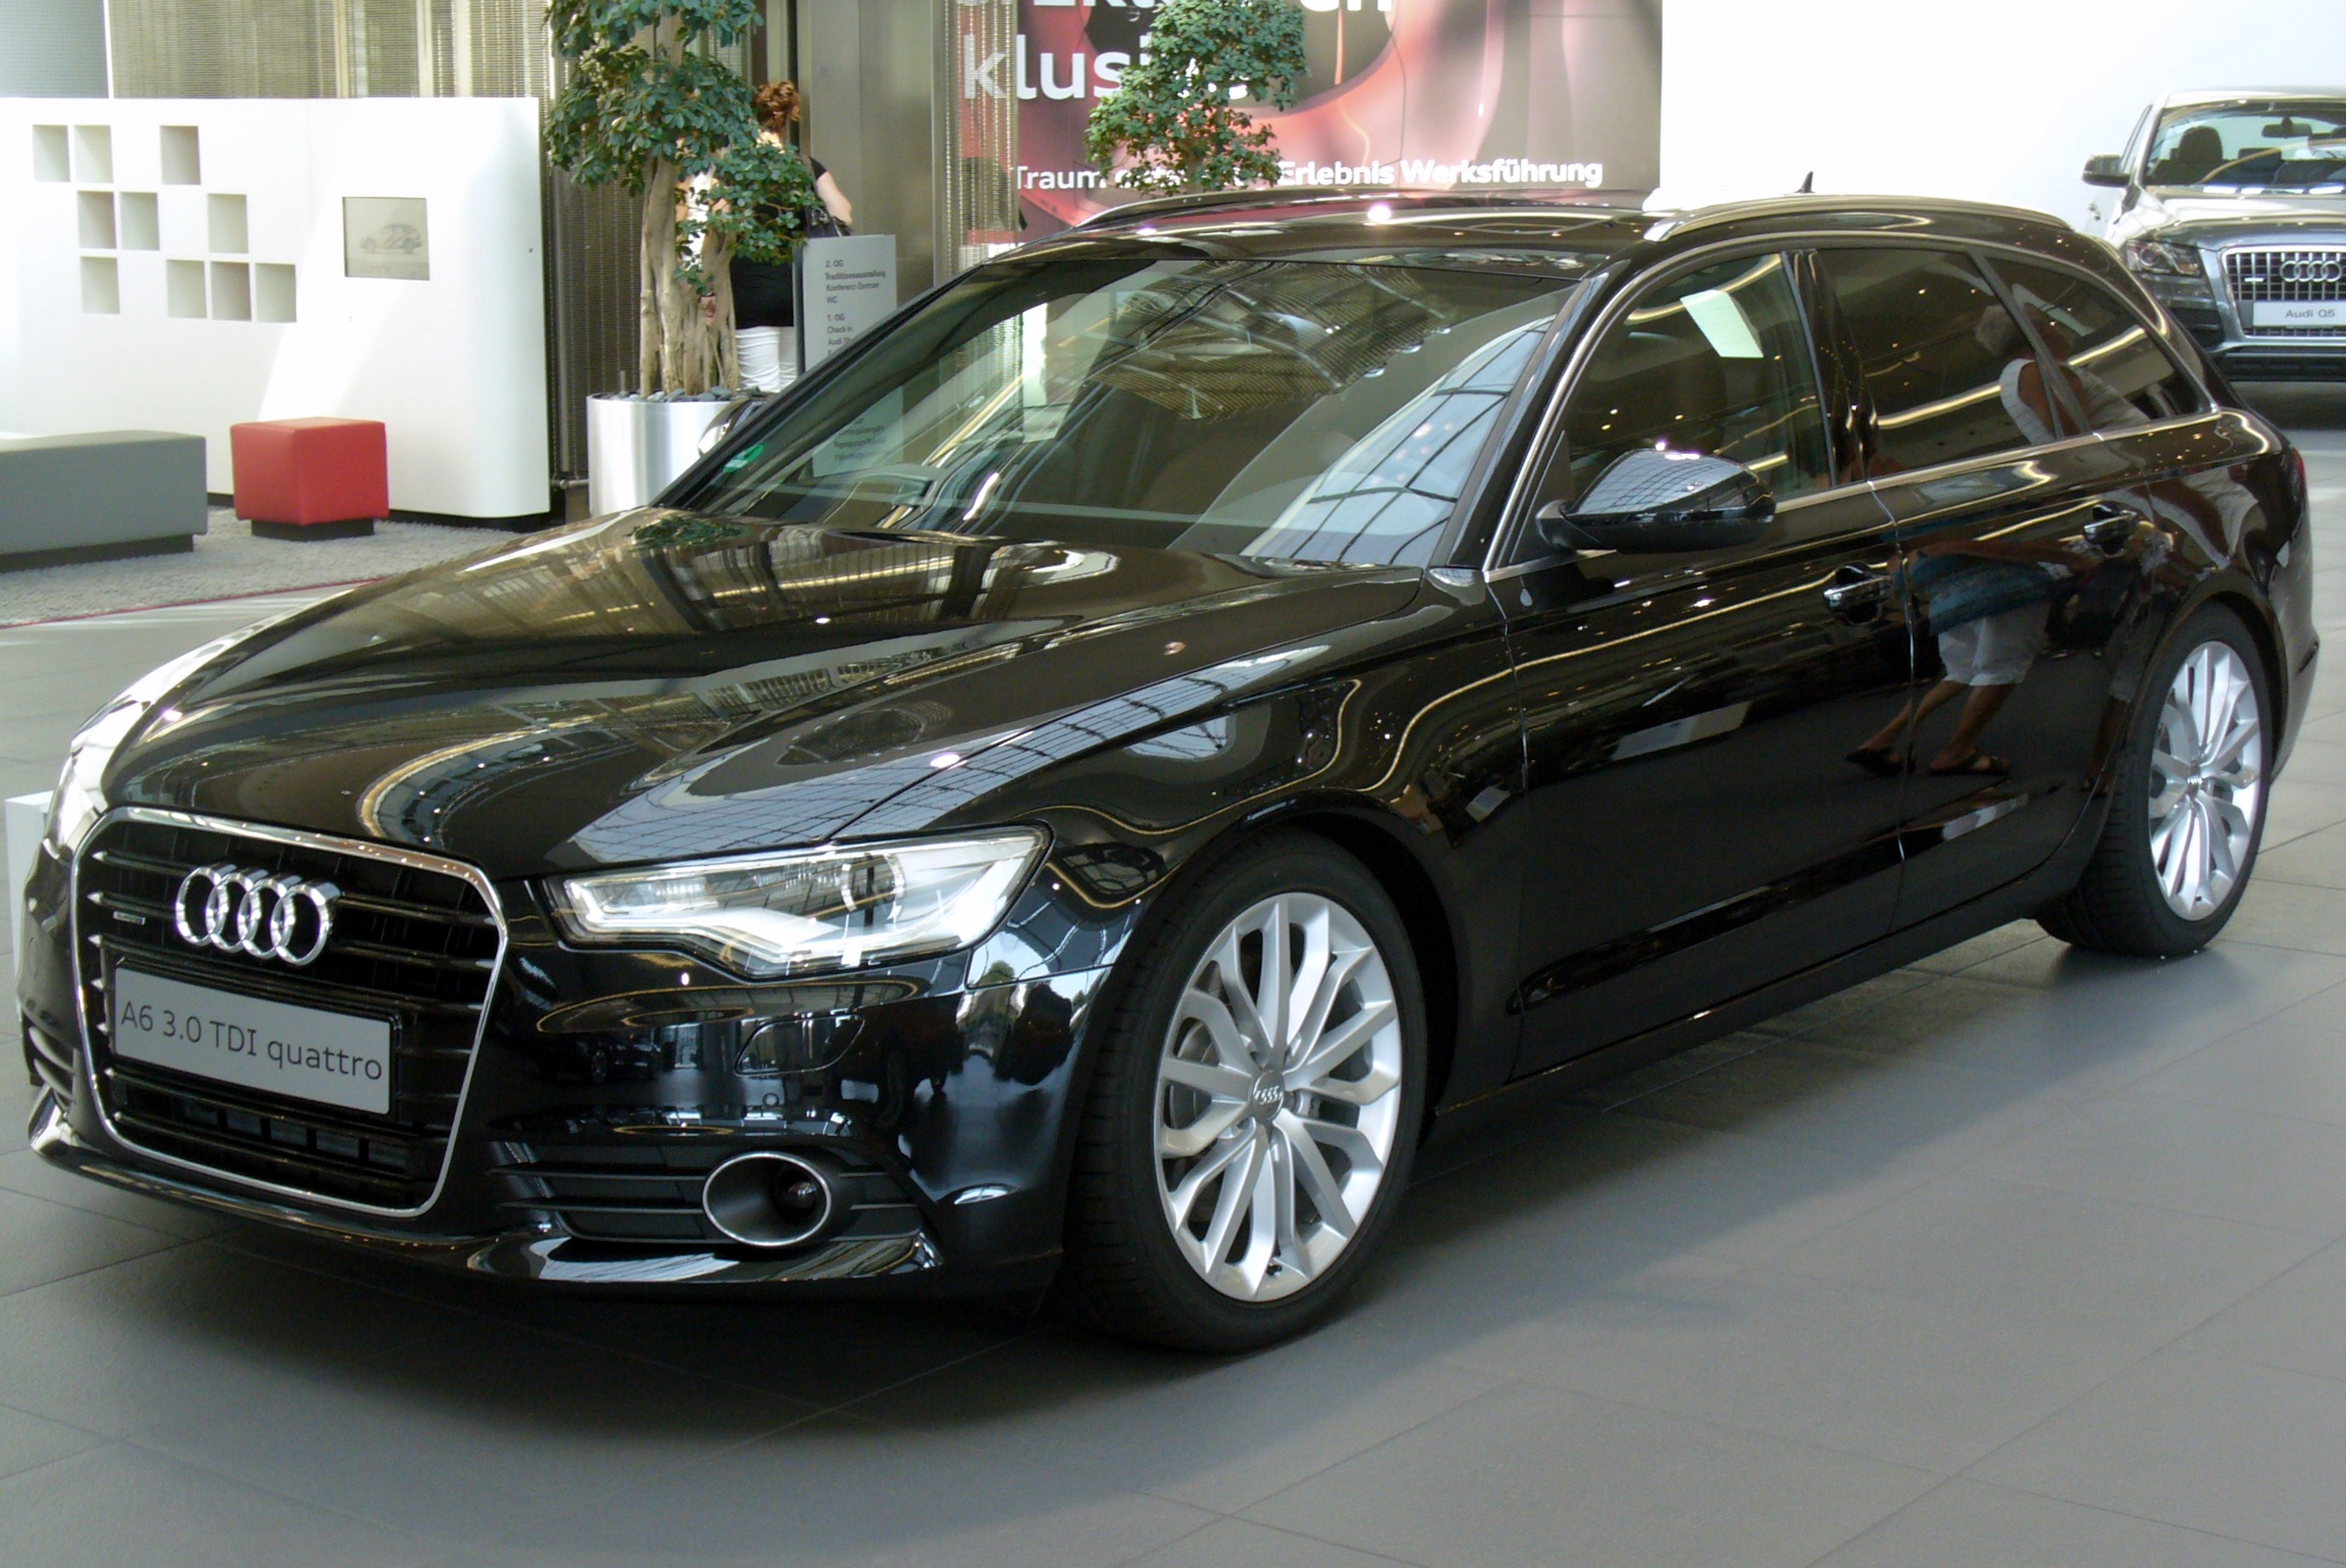 2011 audi a6 avant 3 0 tdi quattro s tronic related. Black Bedroom Furniture Sets. Home Design Ideas